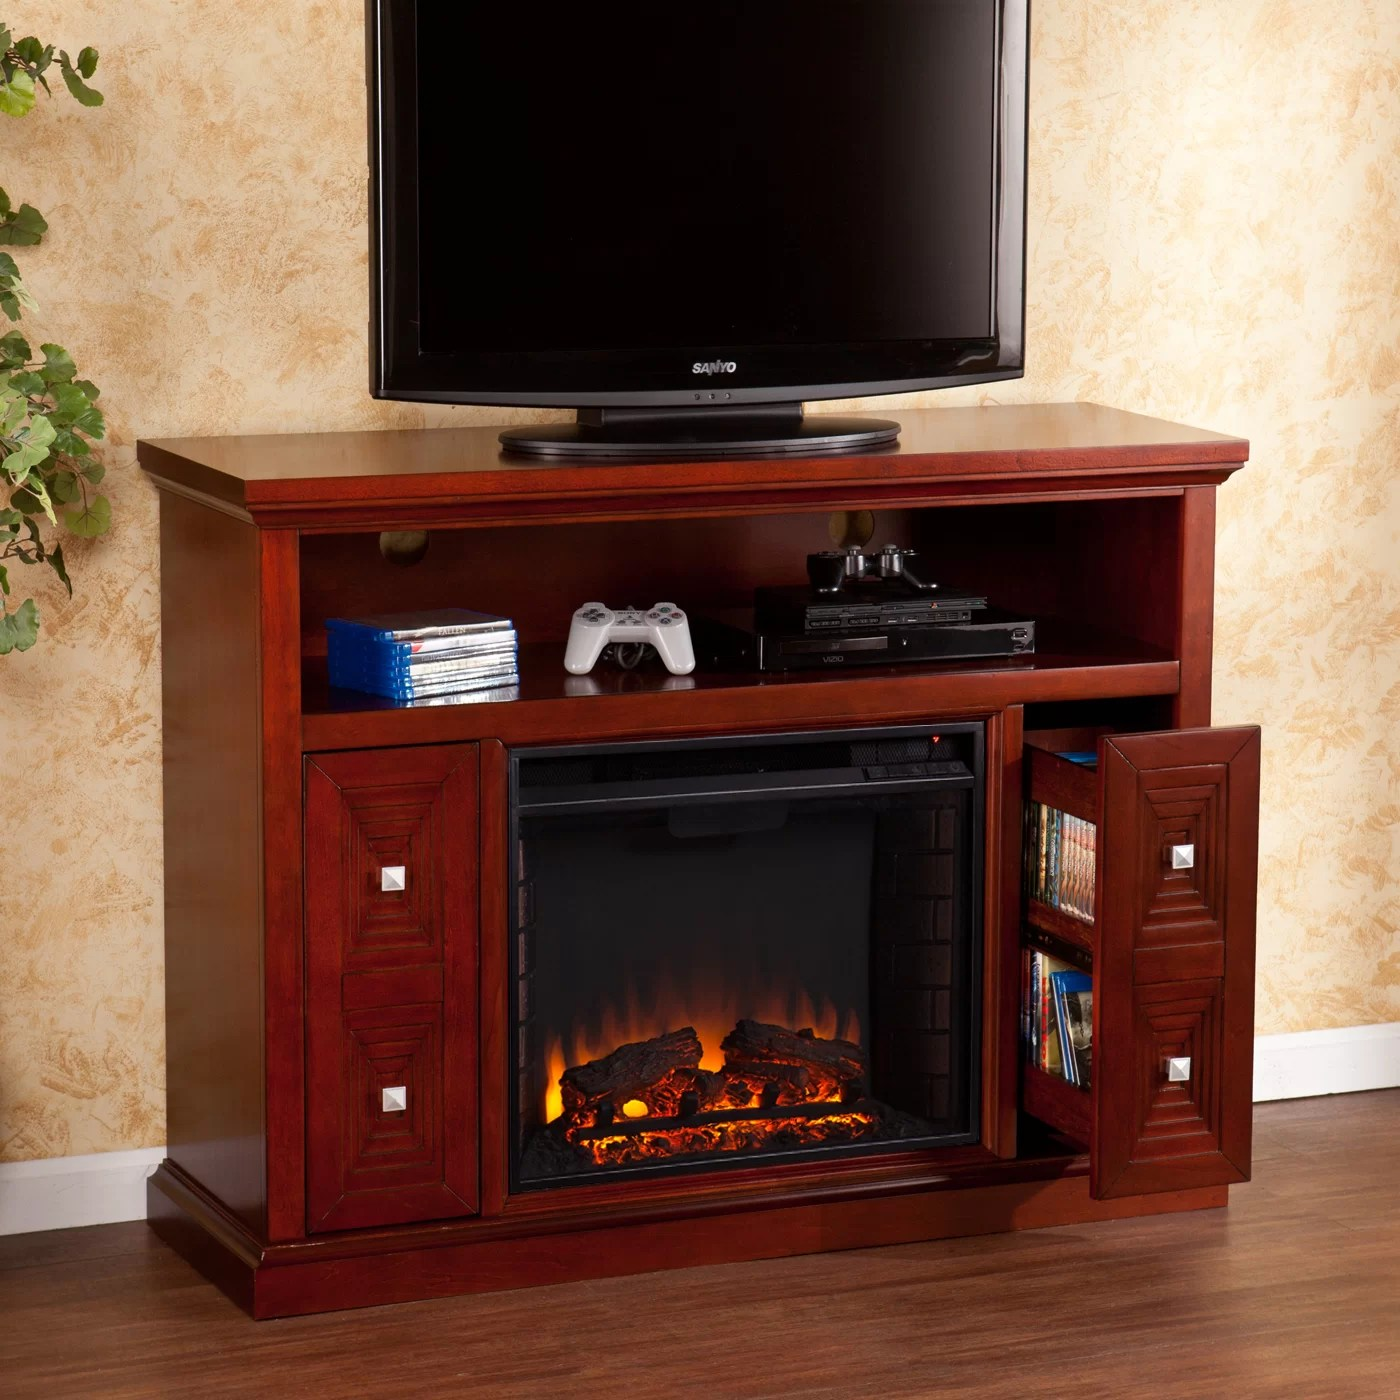 Wildon Home  Faulkner TV Stand with Electric Fireplace  Reviews  Wayfair